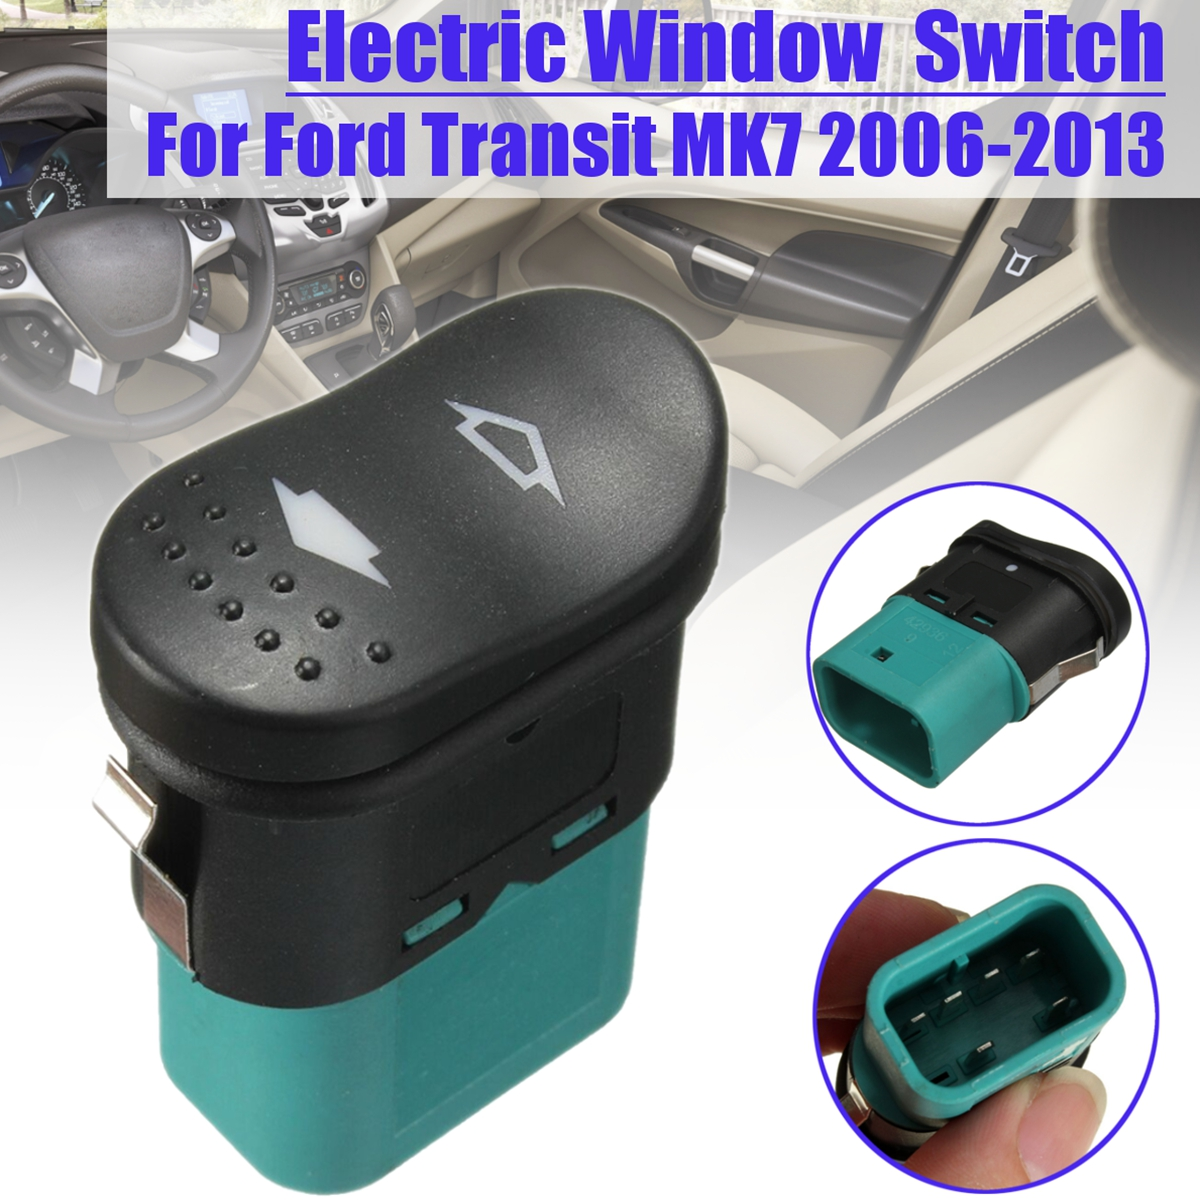 US $1 85 14% OFF Electric Door Window Rocker Switch Front Left & Right For  Ford Transit MK7 2006 2013 1383293-in Car Switches & Relays from